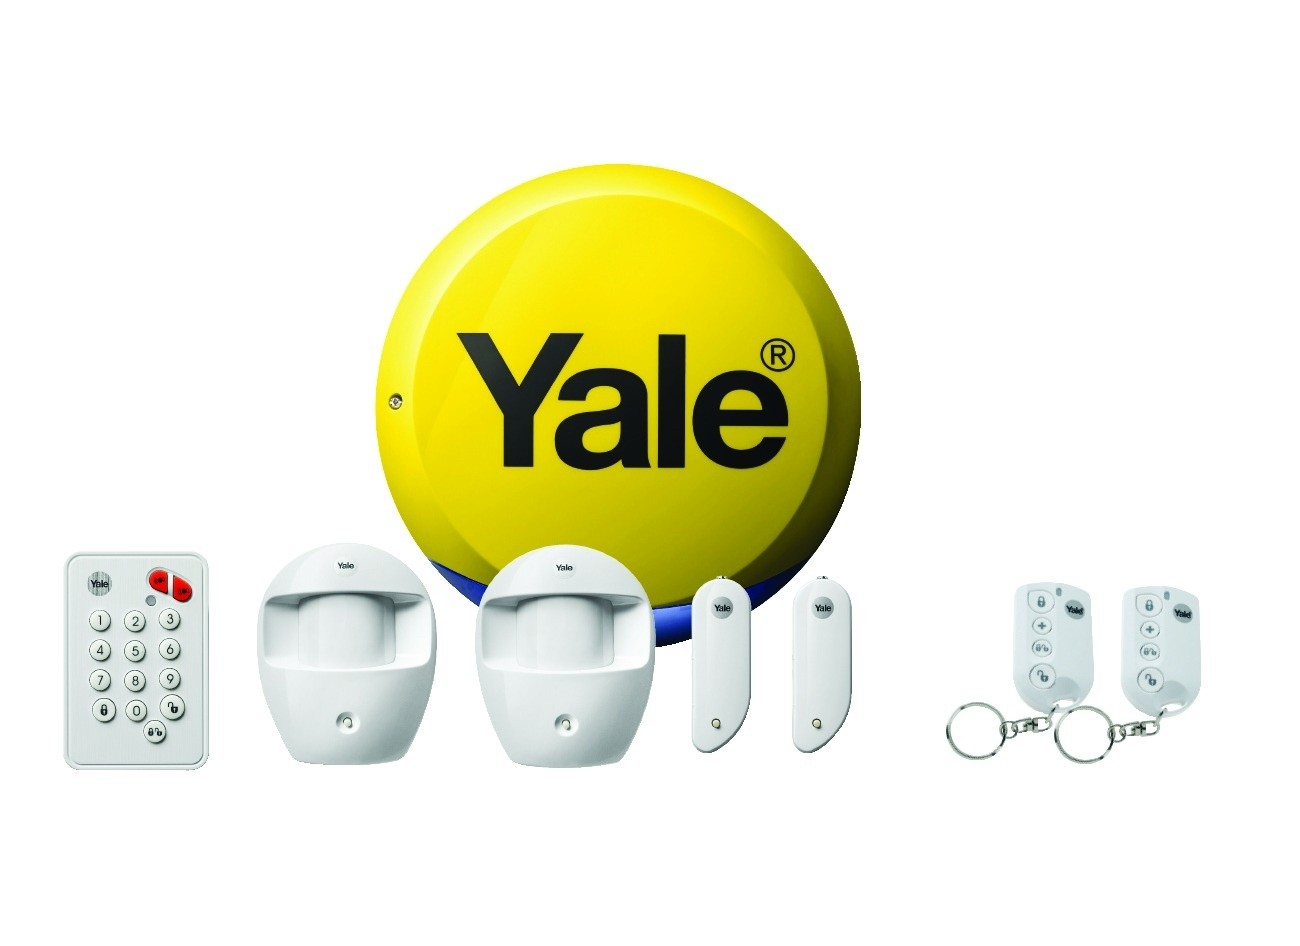 yale easy fit standard wireless wifi home security alarm. Black Bedroom Furniture Sets. Home Design Ideas